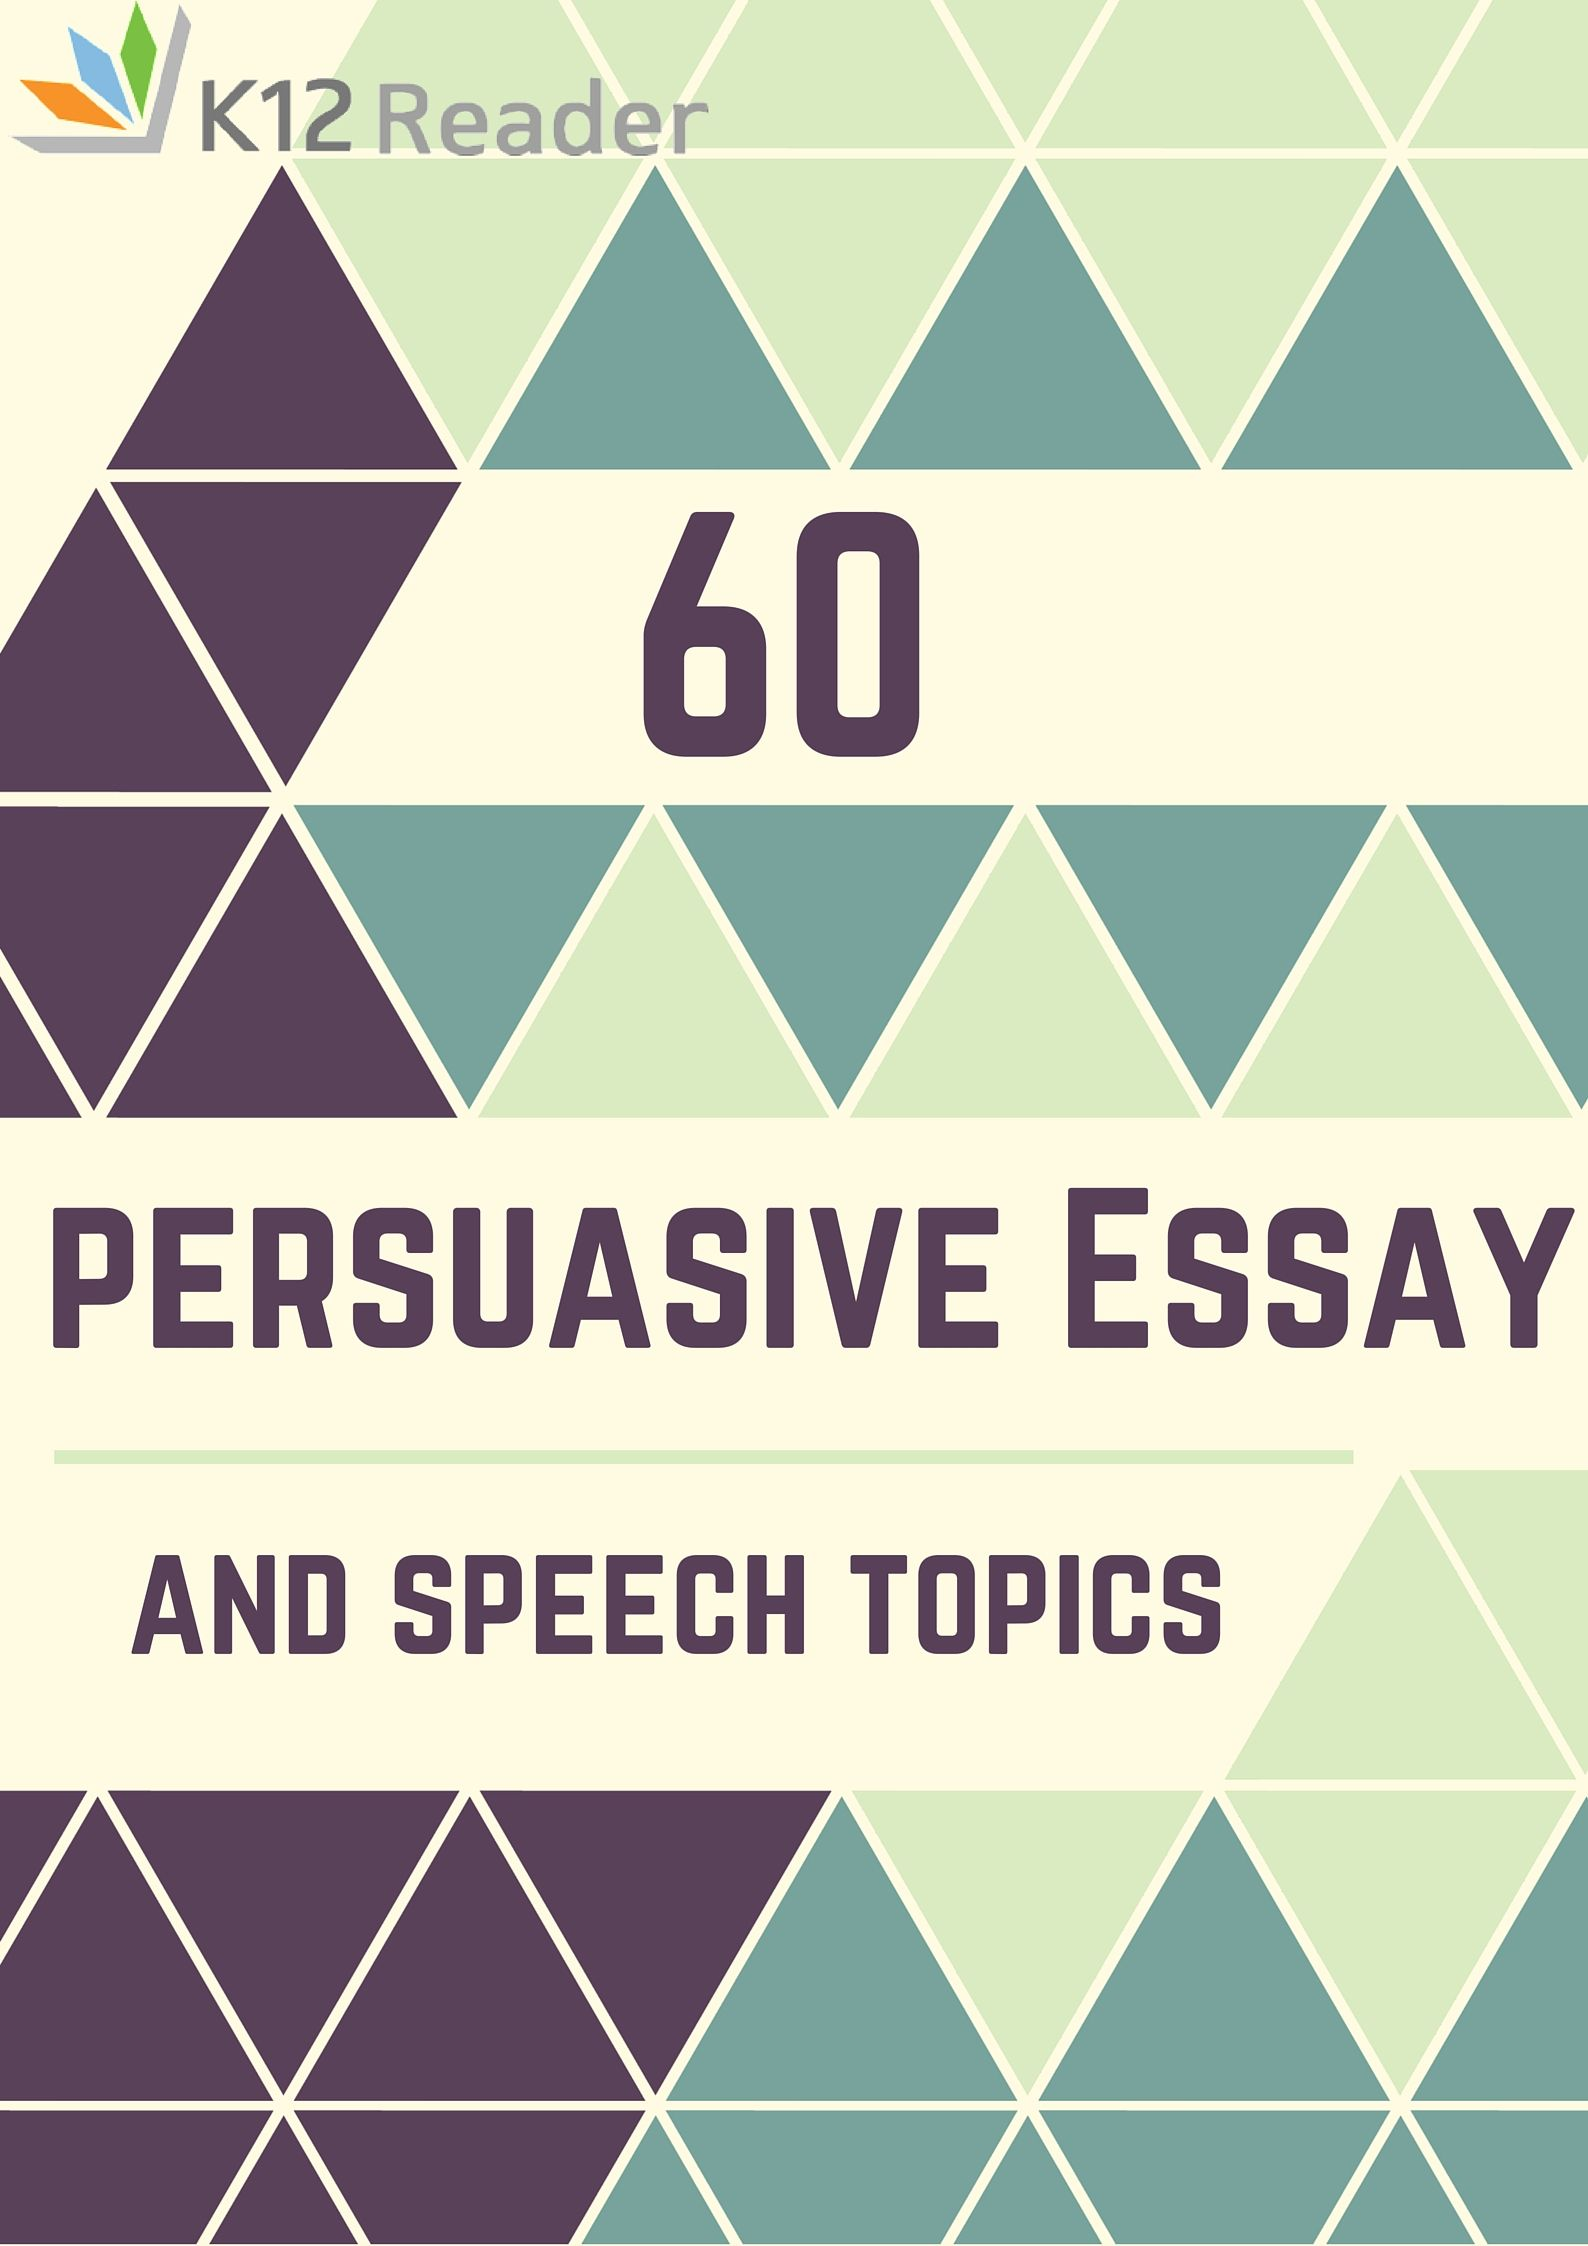 Argument essay topics for college students